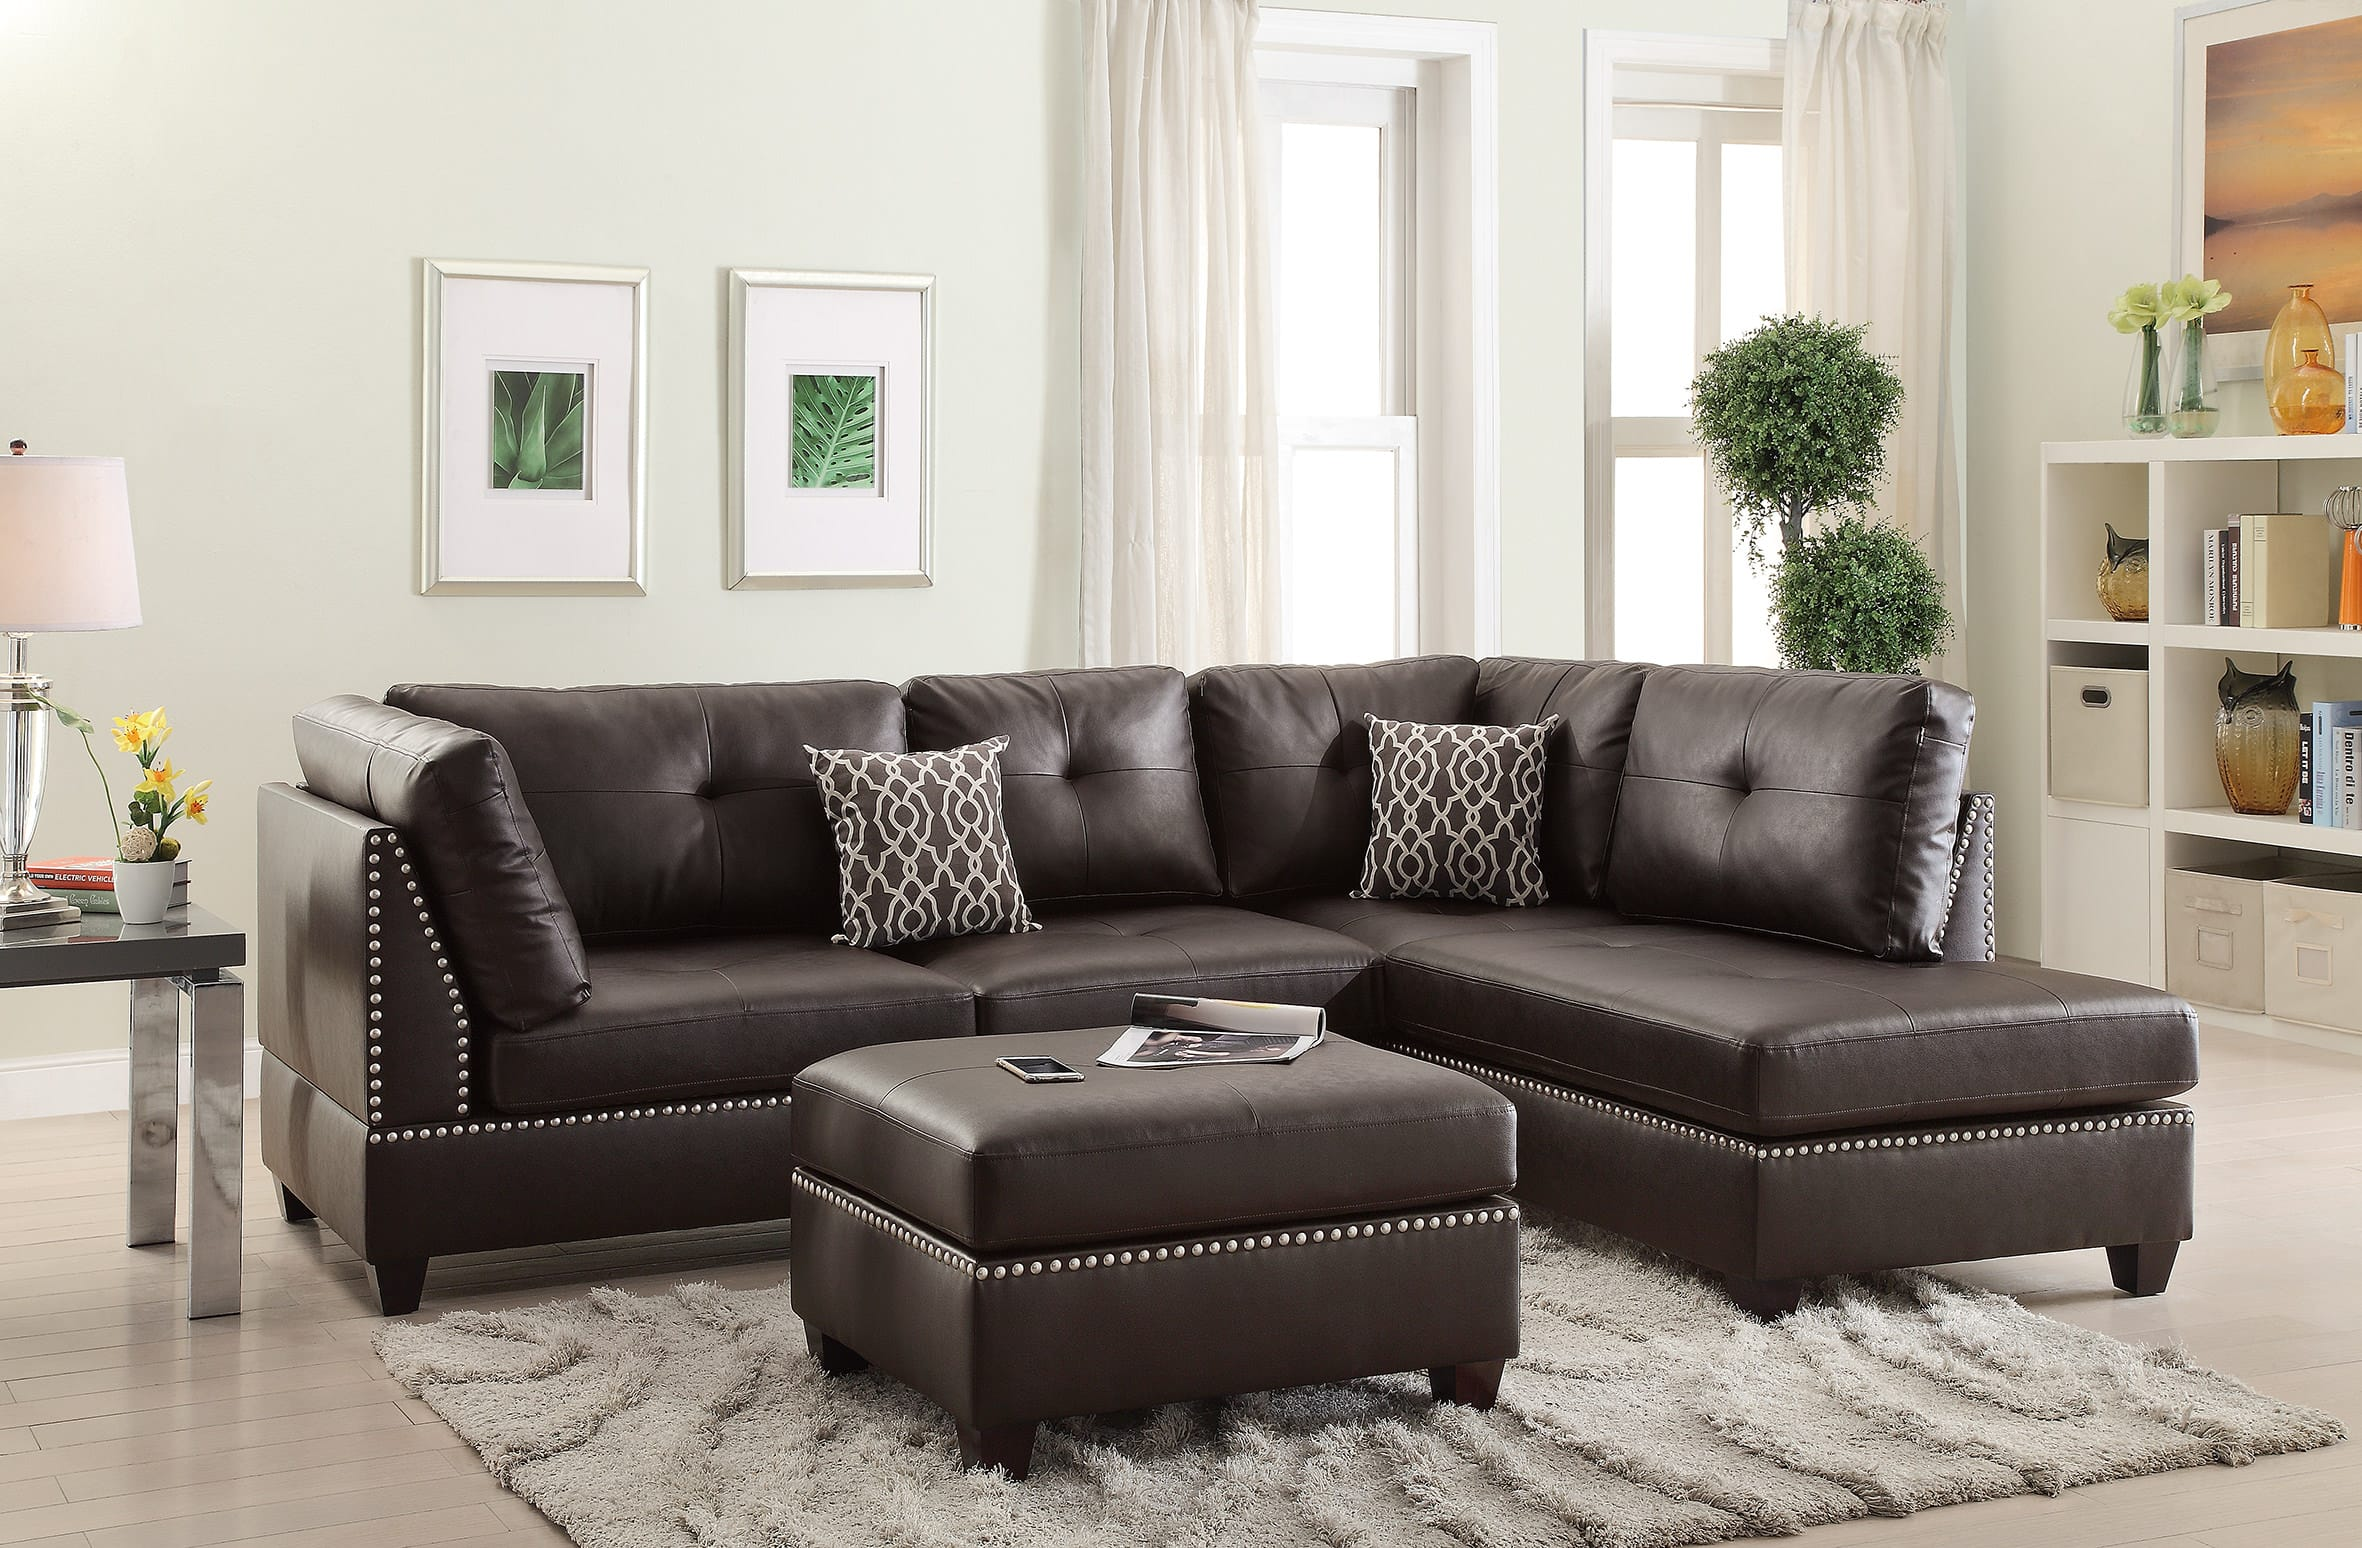 F6973 Espresso 3 Pcs Sectional Sofa Set By Poundex